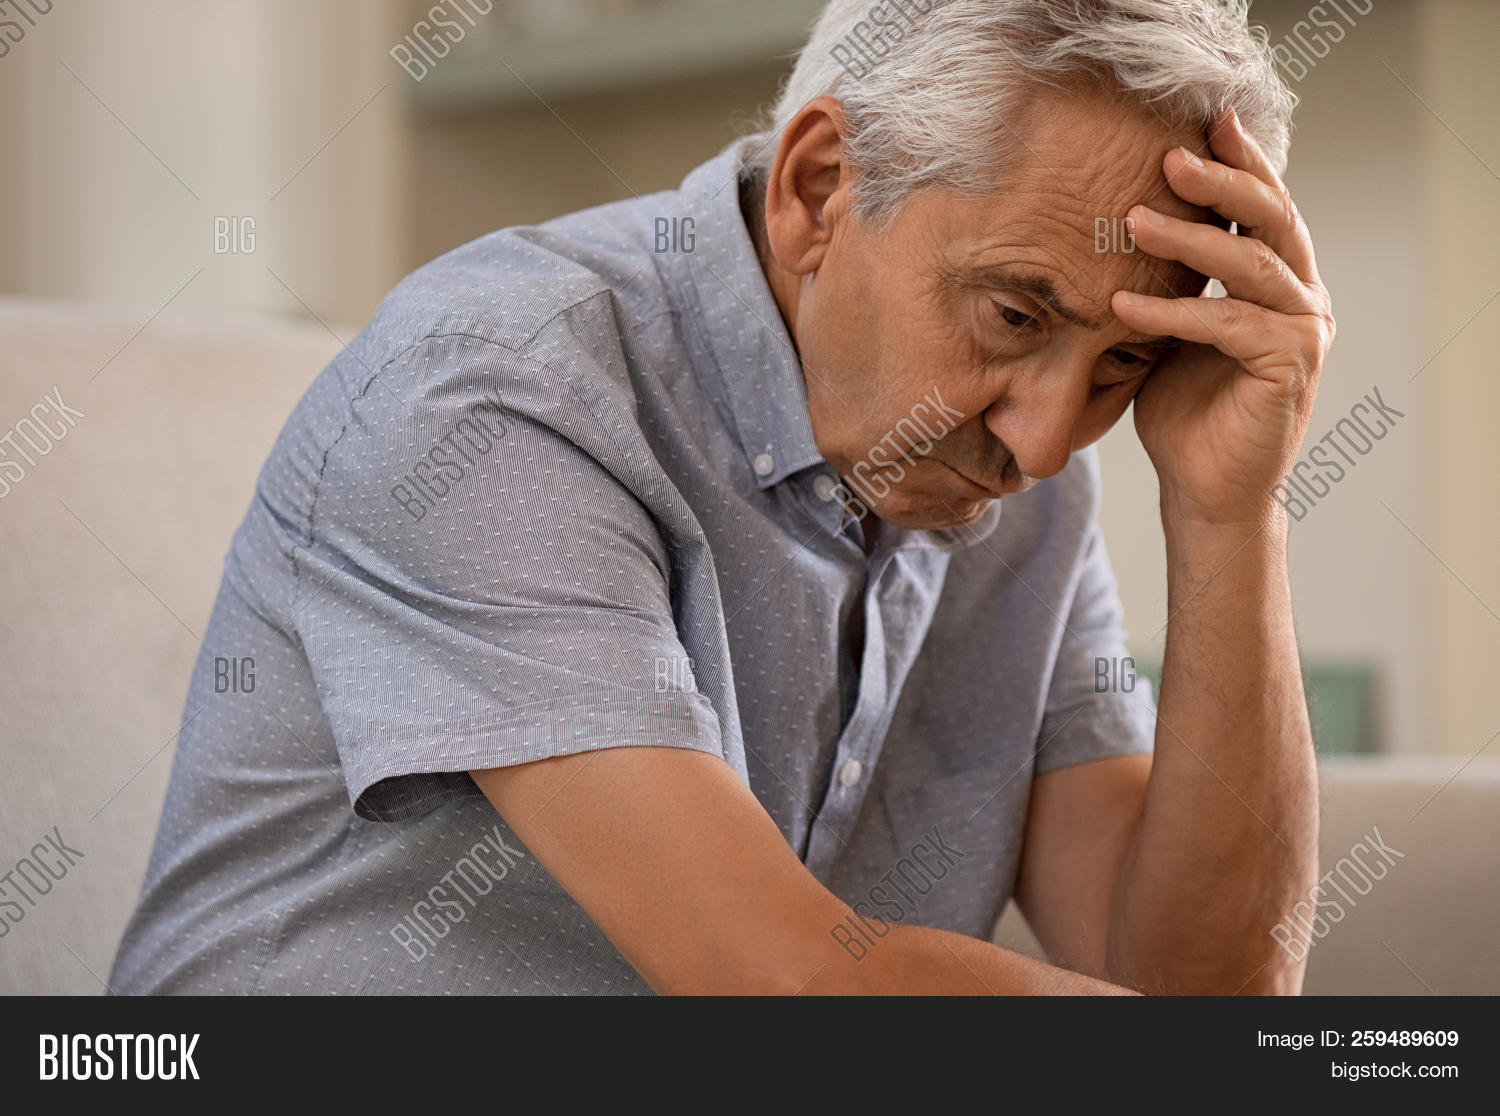 Thoughtful senior man sitting on couch. Depressed sad man sitting with hand on head thinking while l